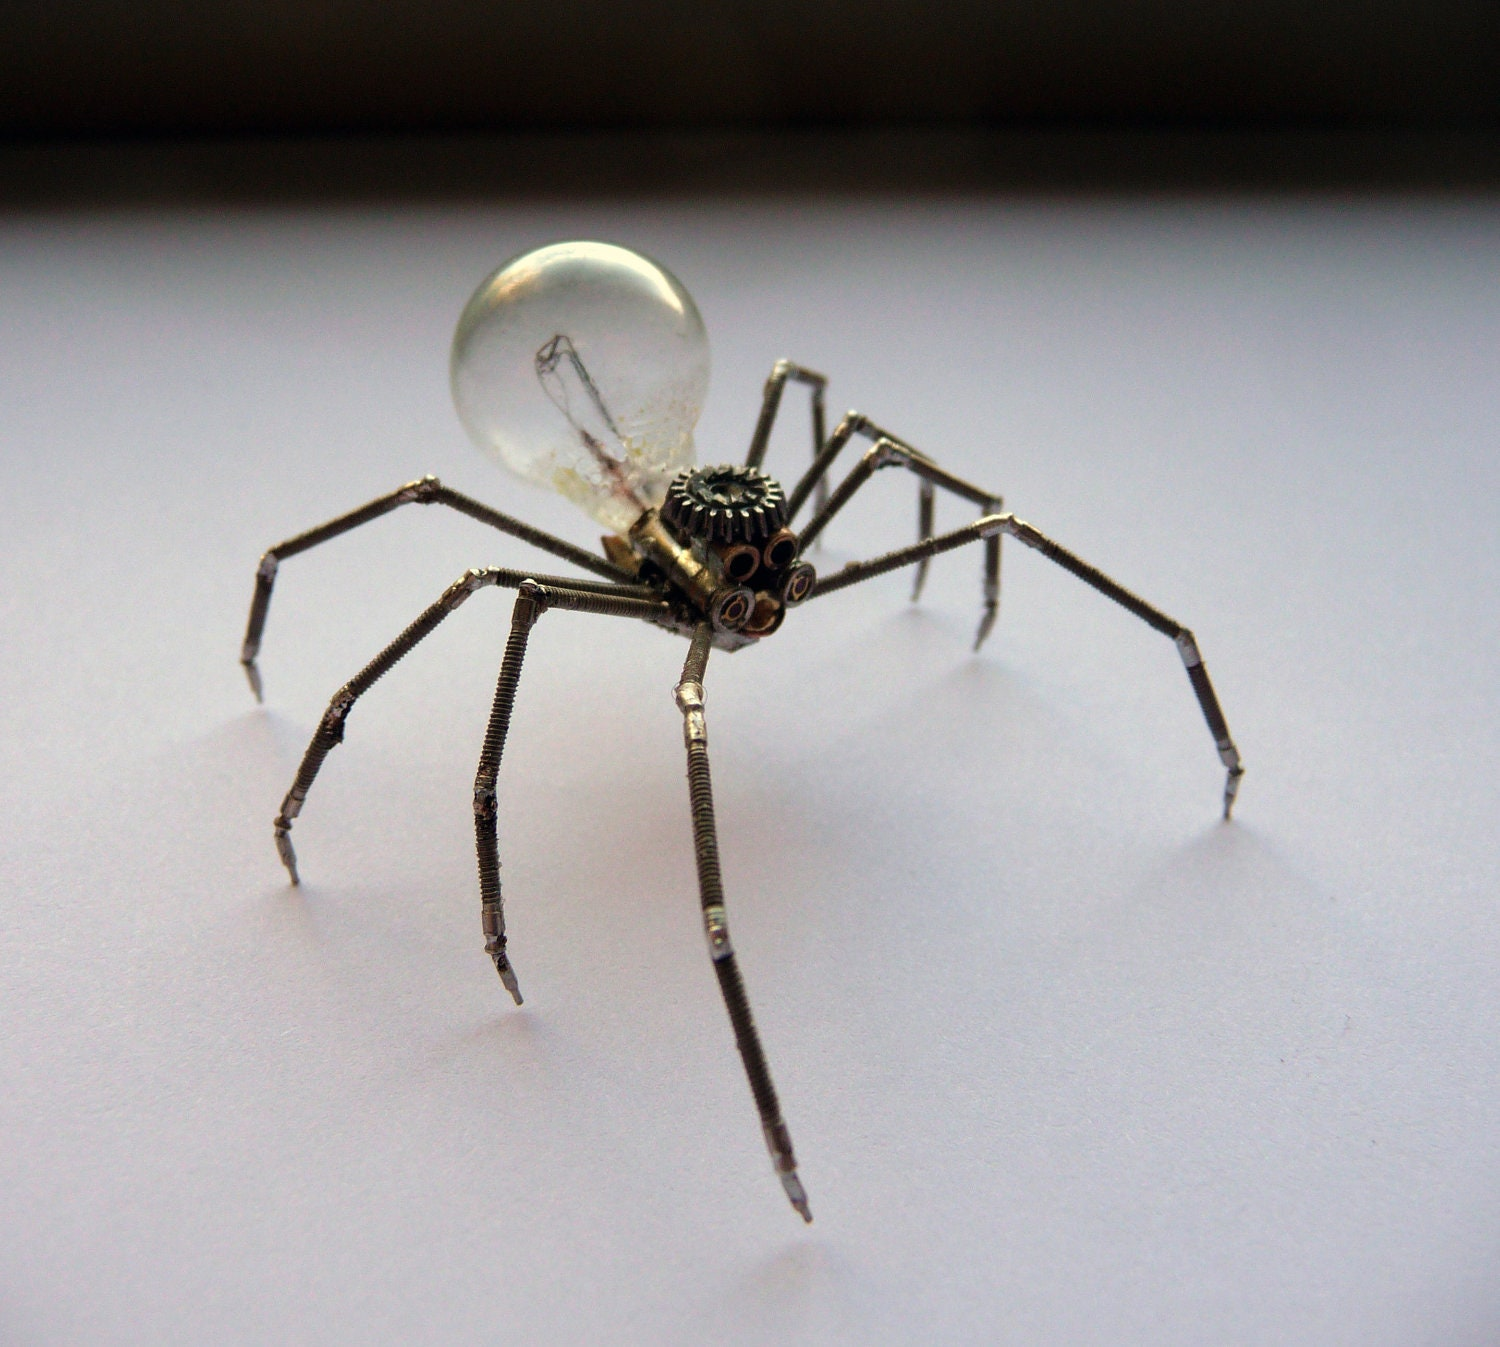 Mechanical Spider Sculpture No 3 Recycled Watch Parts Clockwork Arachnid Figurine Watch Stems Lightbulb Arthropod A Mechanical Mind